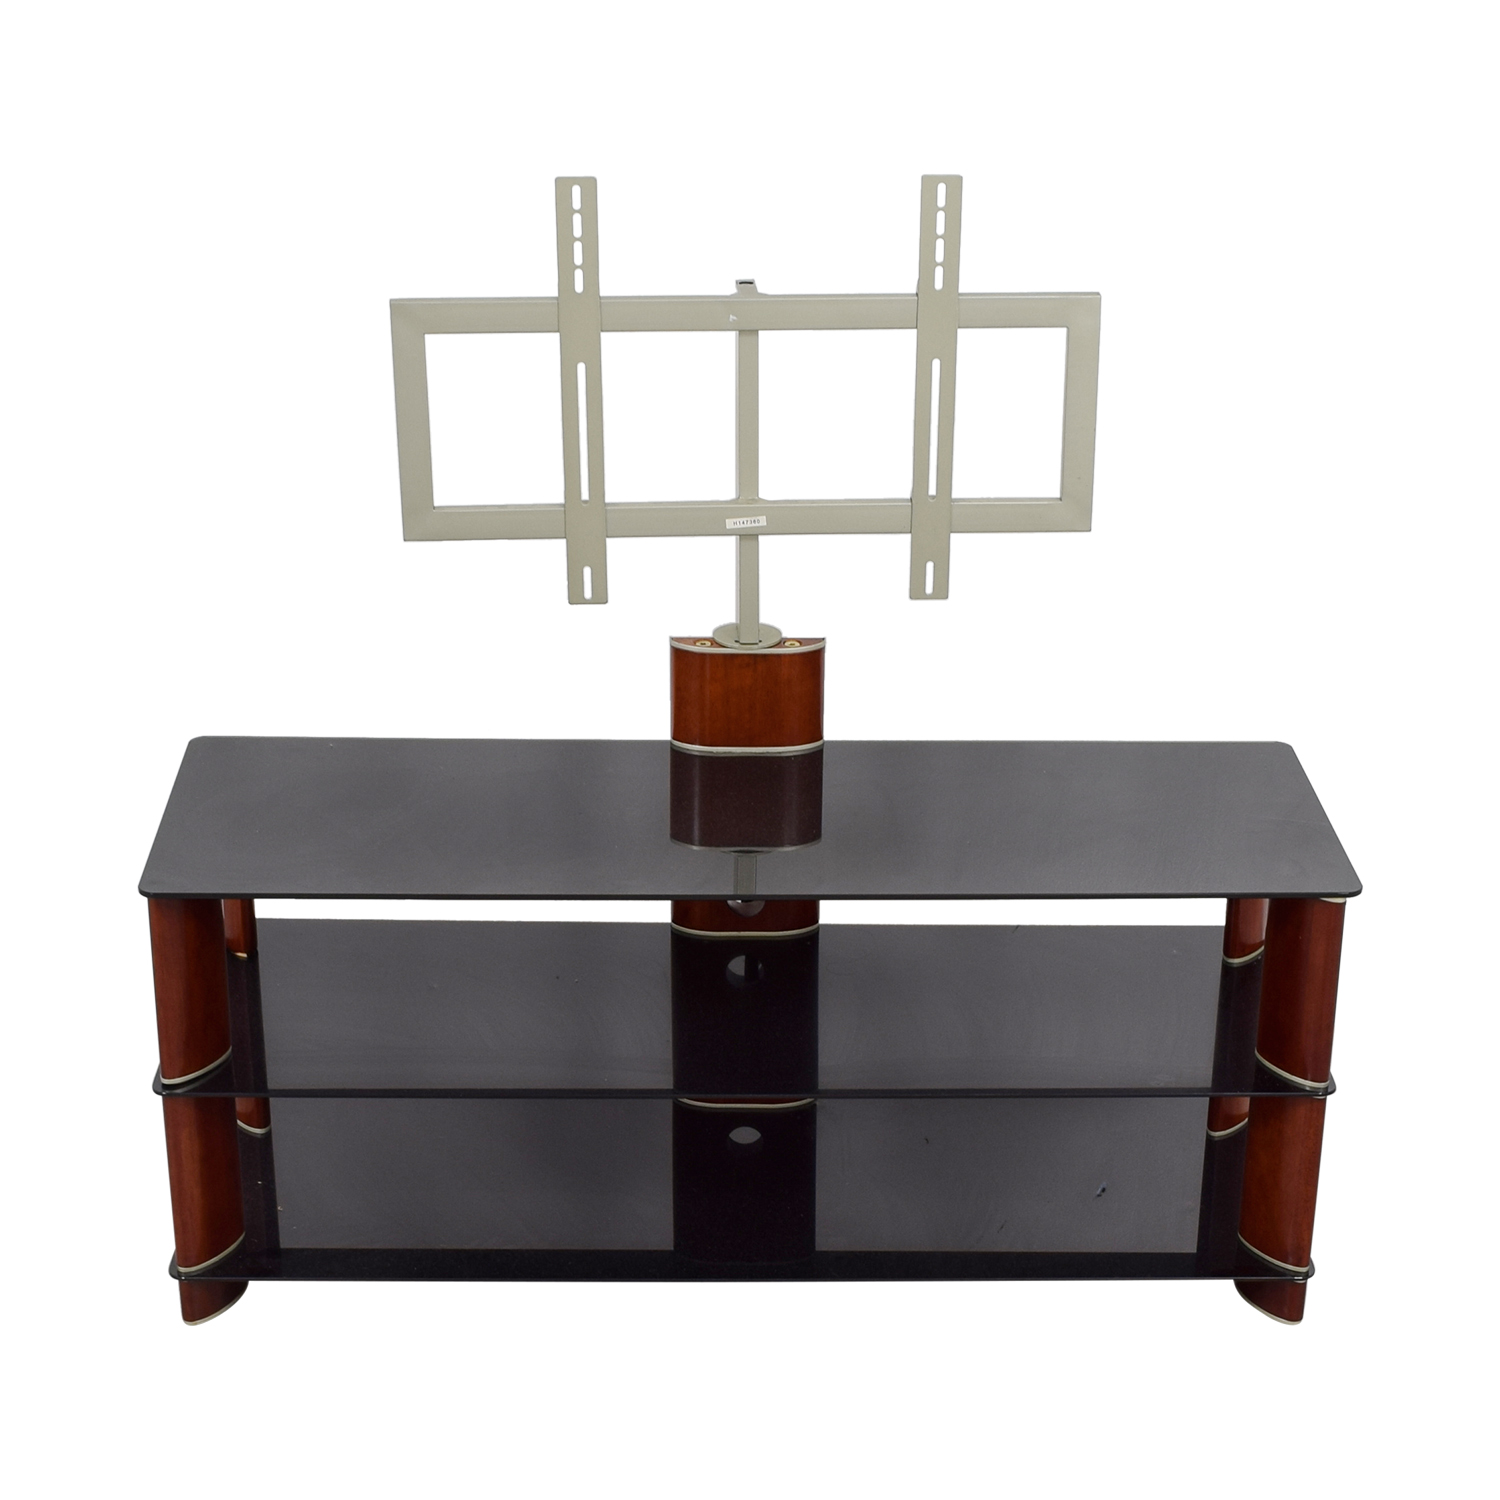 Ordinaire 89% OFF   PC Richard PC Richards Tempered Glass TV Stand / Storage